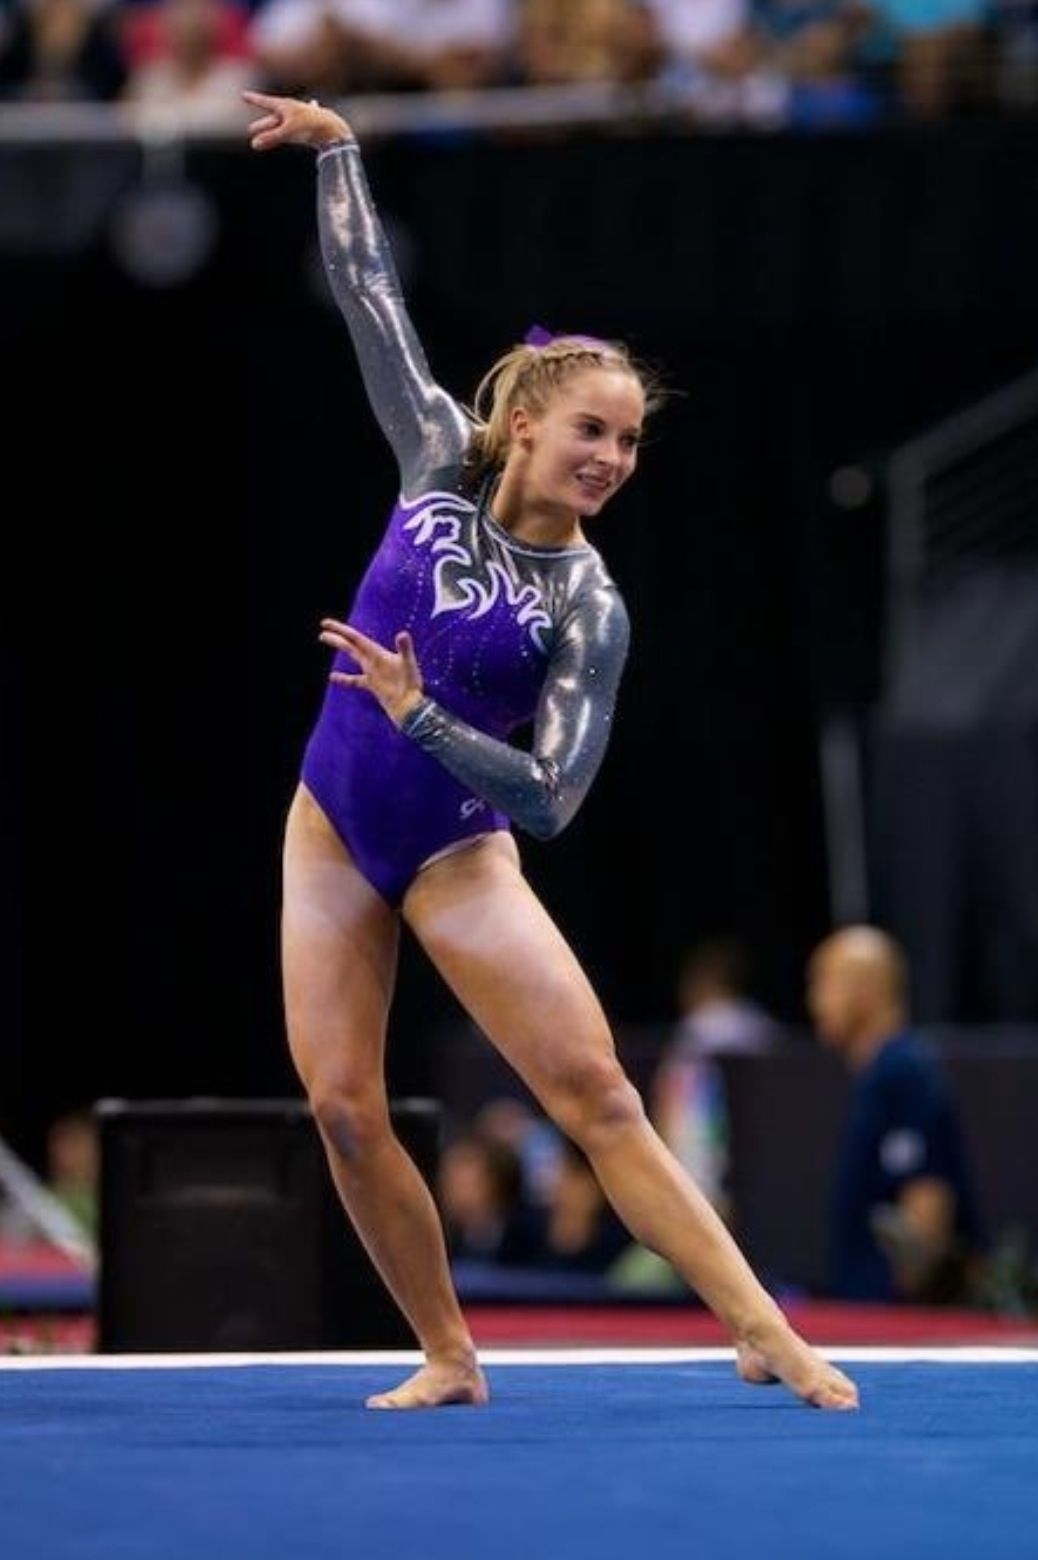 Mykayla skinner 39 s floor gymnastics pinterest for Floor gymnastics